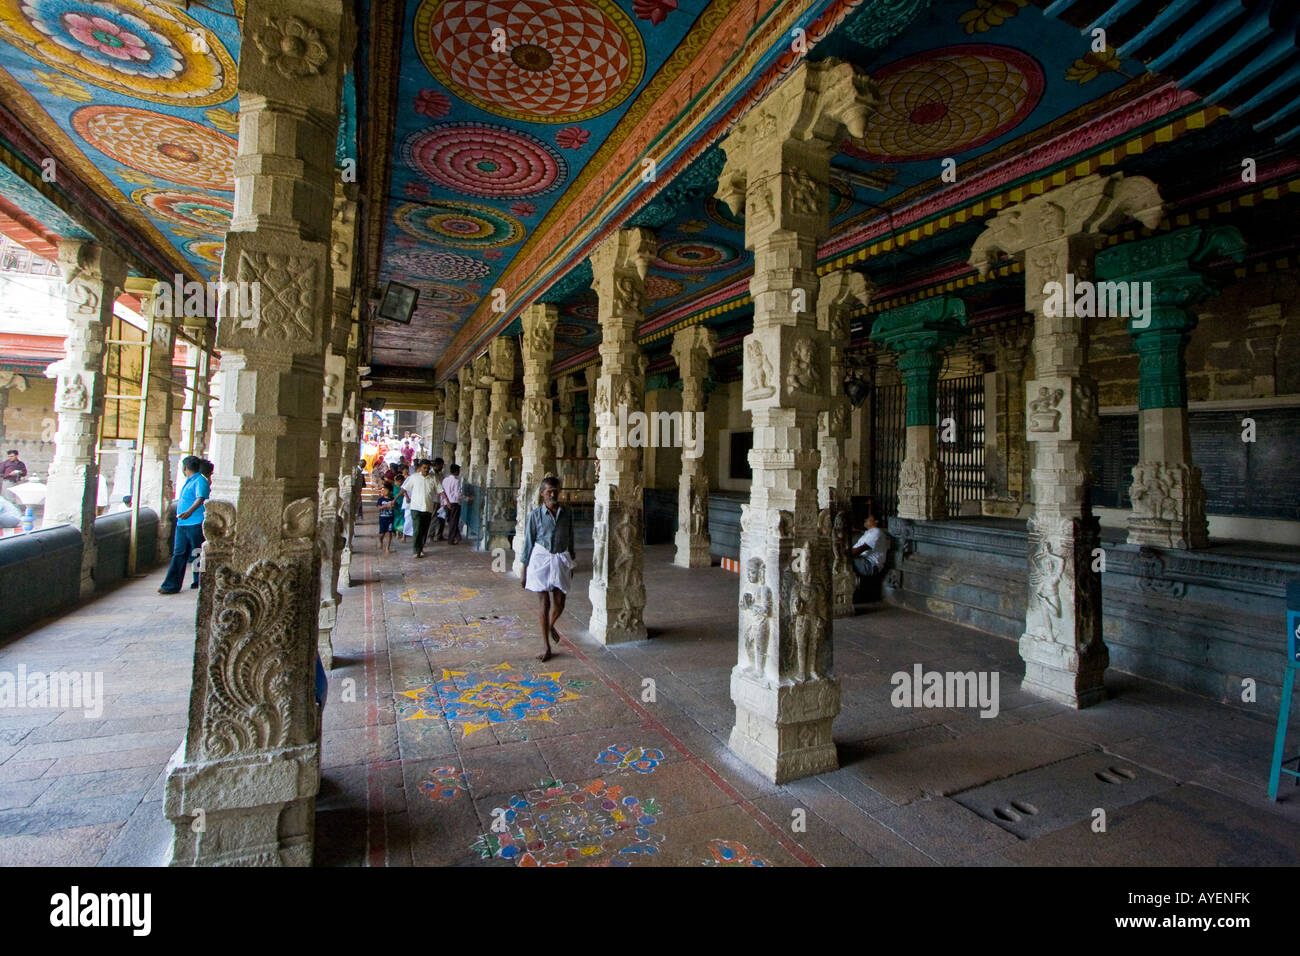 I Have Never...: Day 53 - Visiting a Hindu Temple   Inside A Hindu Temple